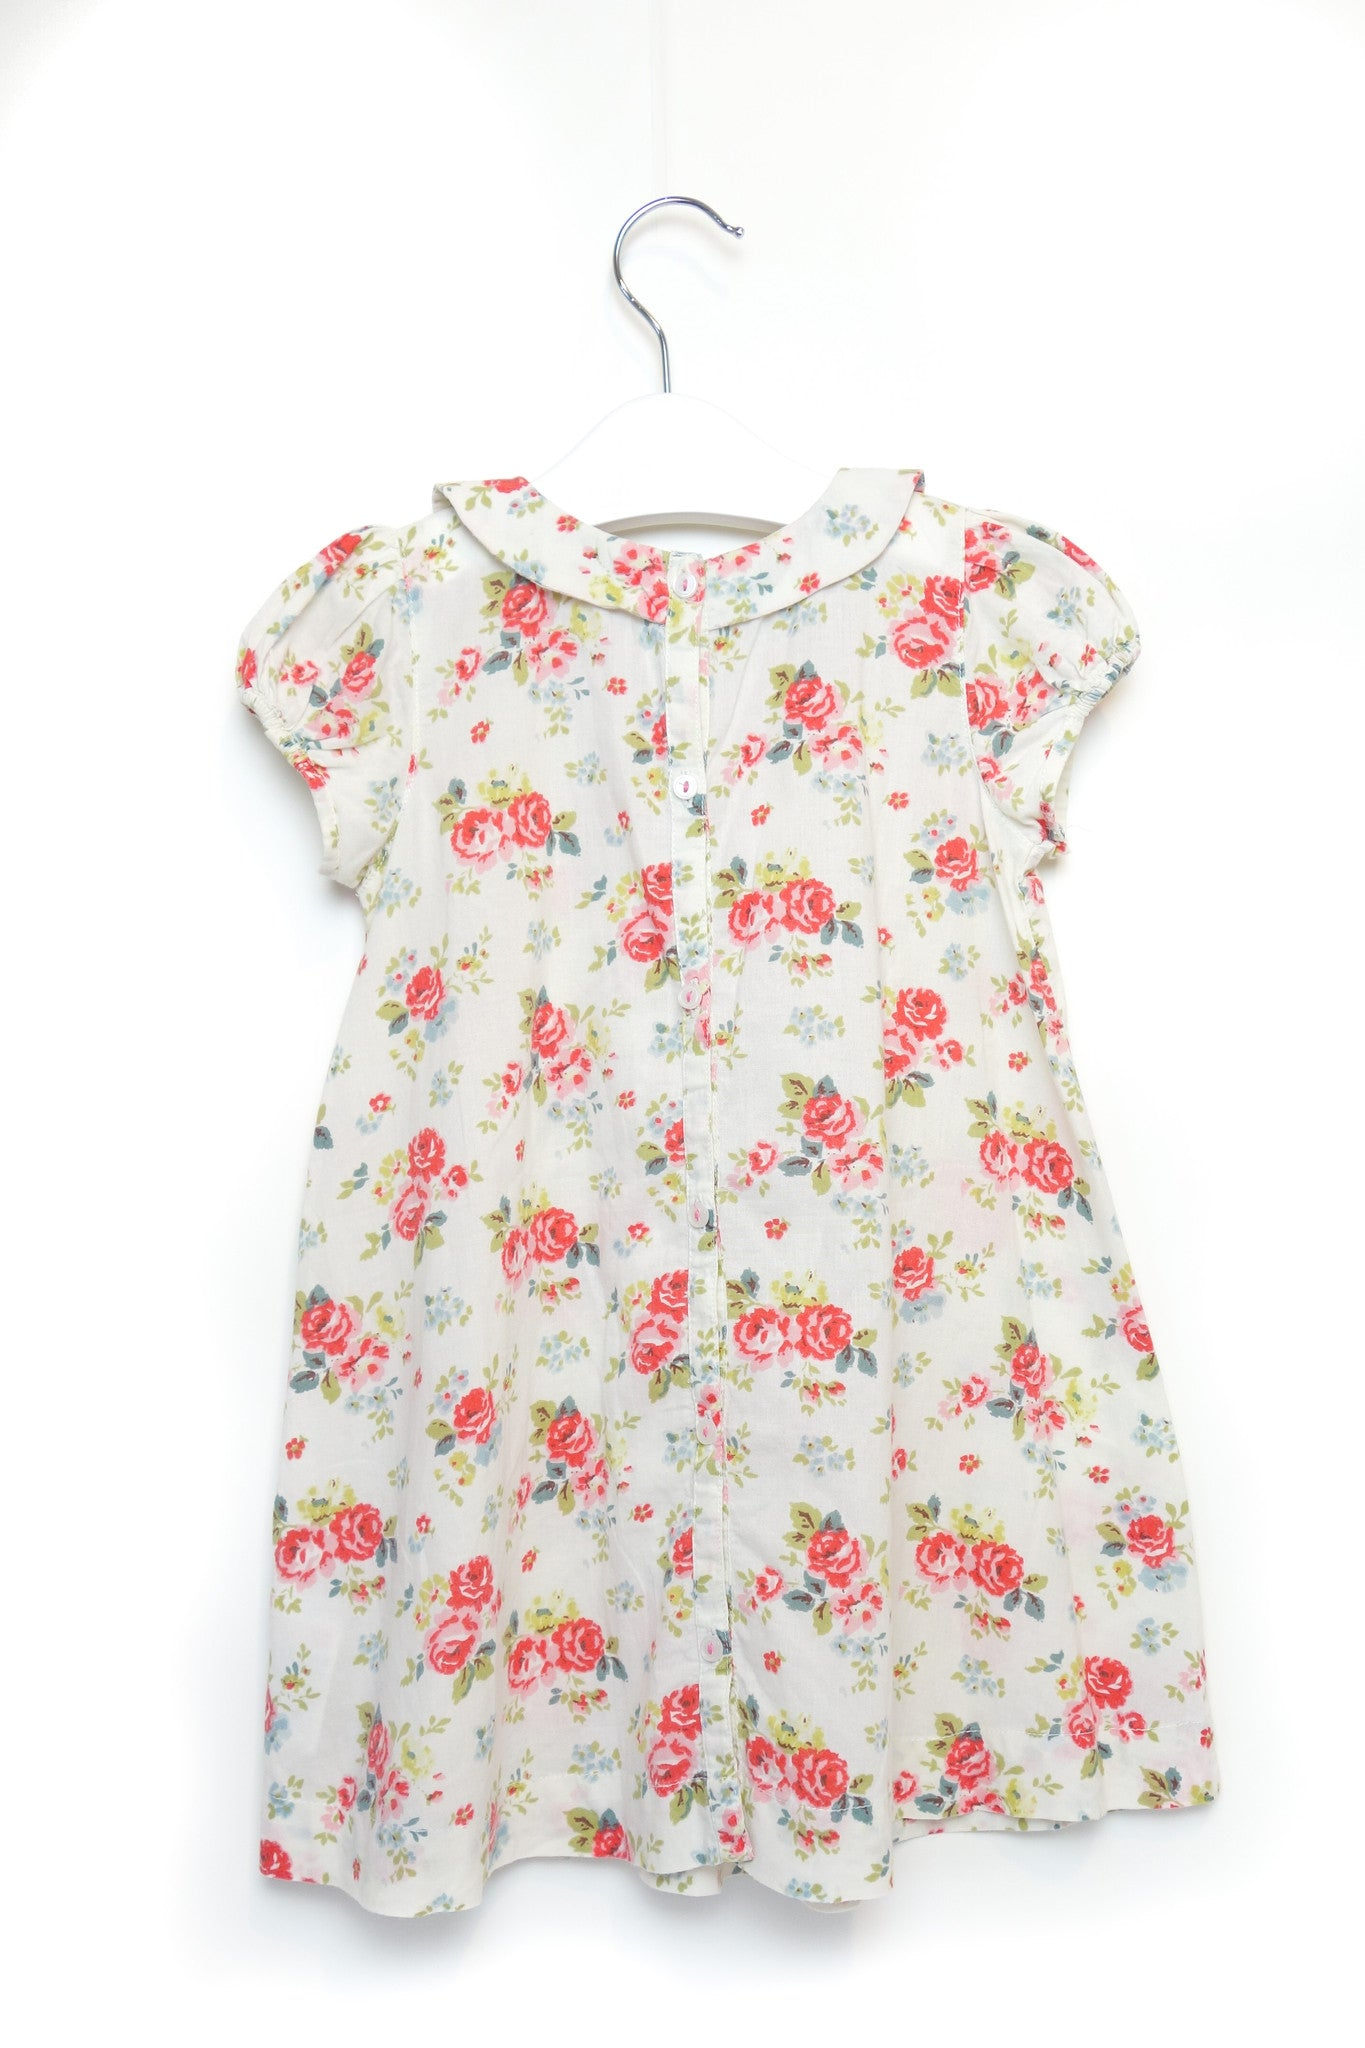 Cath Kidston at Retykle | Online Shopping Discount Baby & Kids Clothes Hong Kong